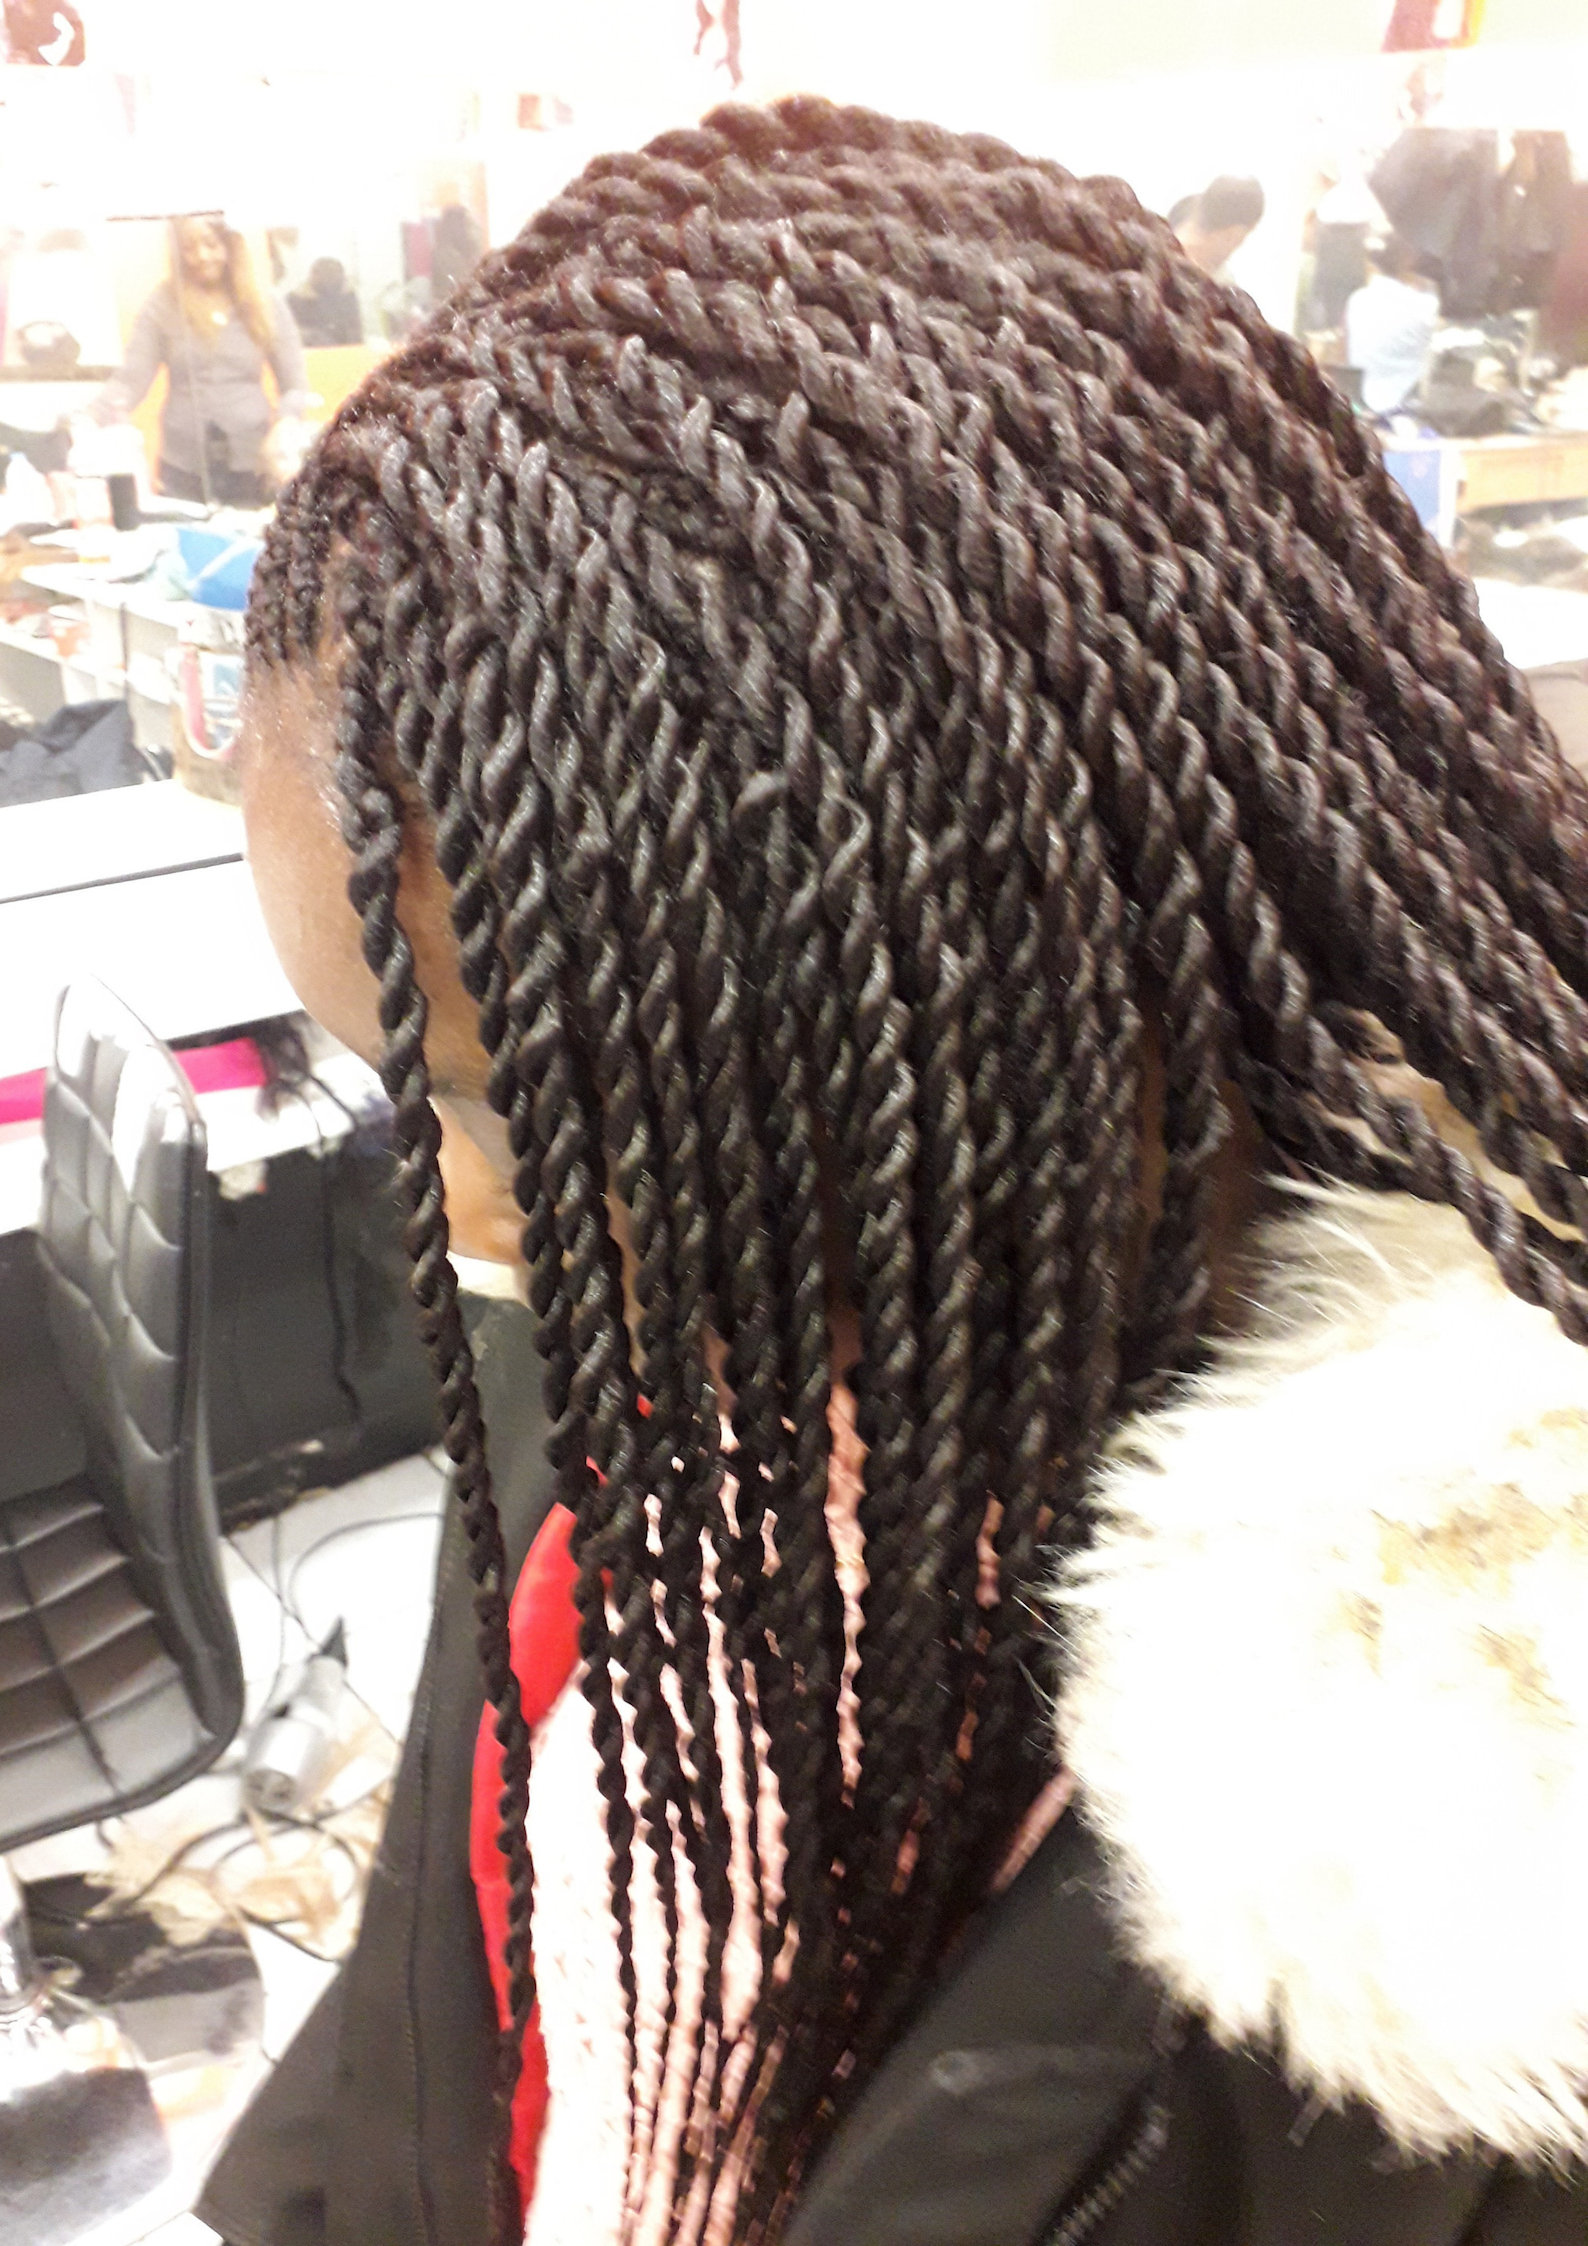 salon de coiffure afro tresse tresses box braids crochet braids vanilles tissages paris 75 77 78 91 92 93 94 95 UNRCWMBA